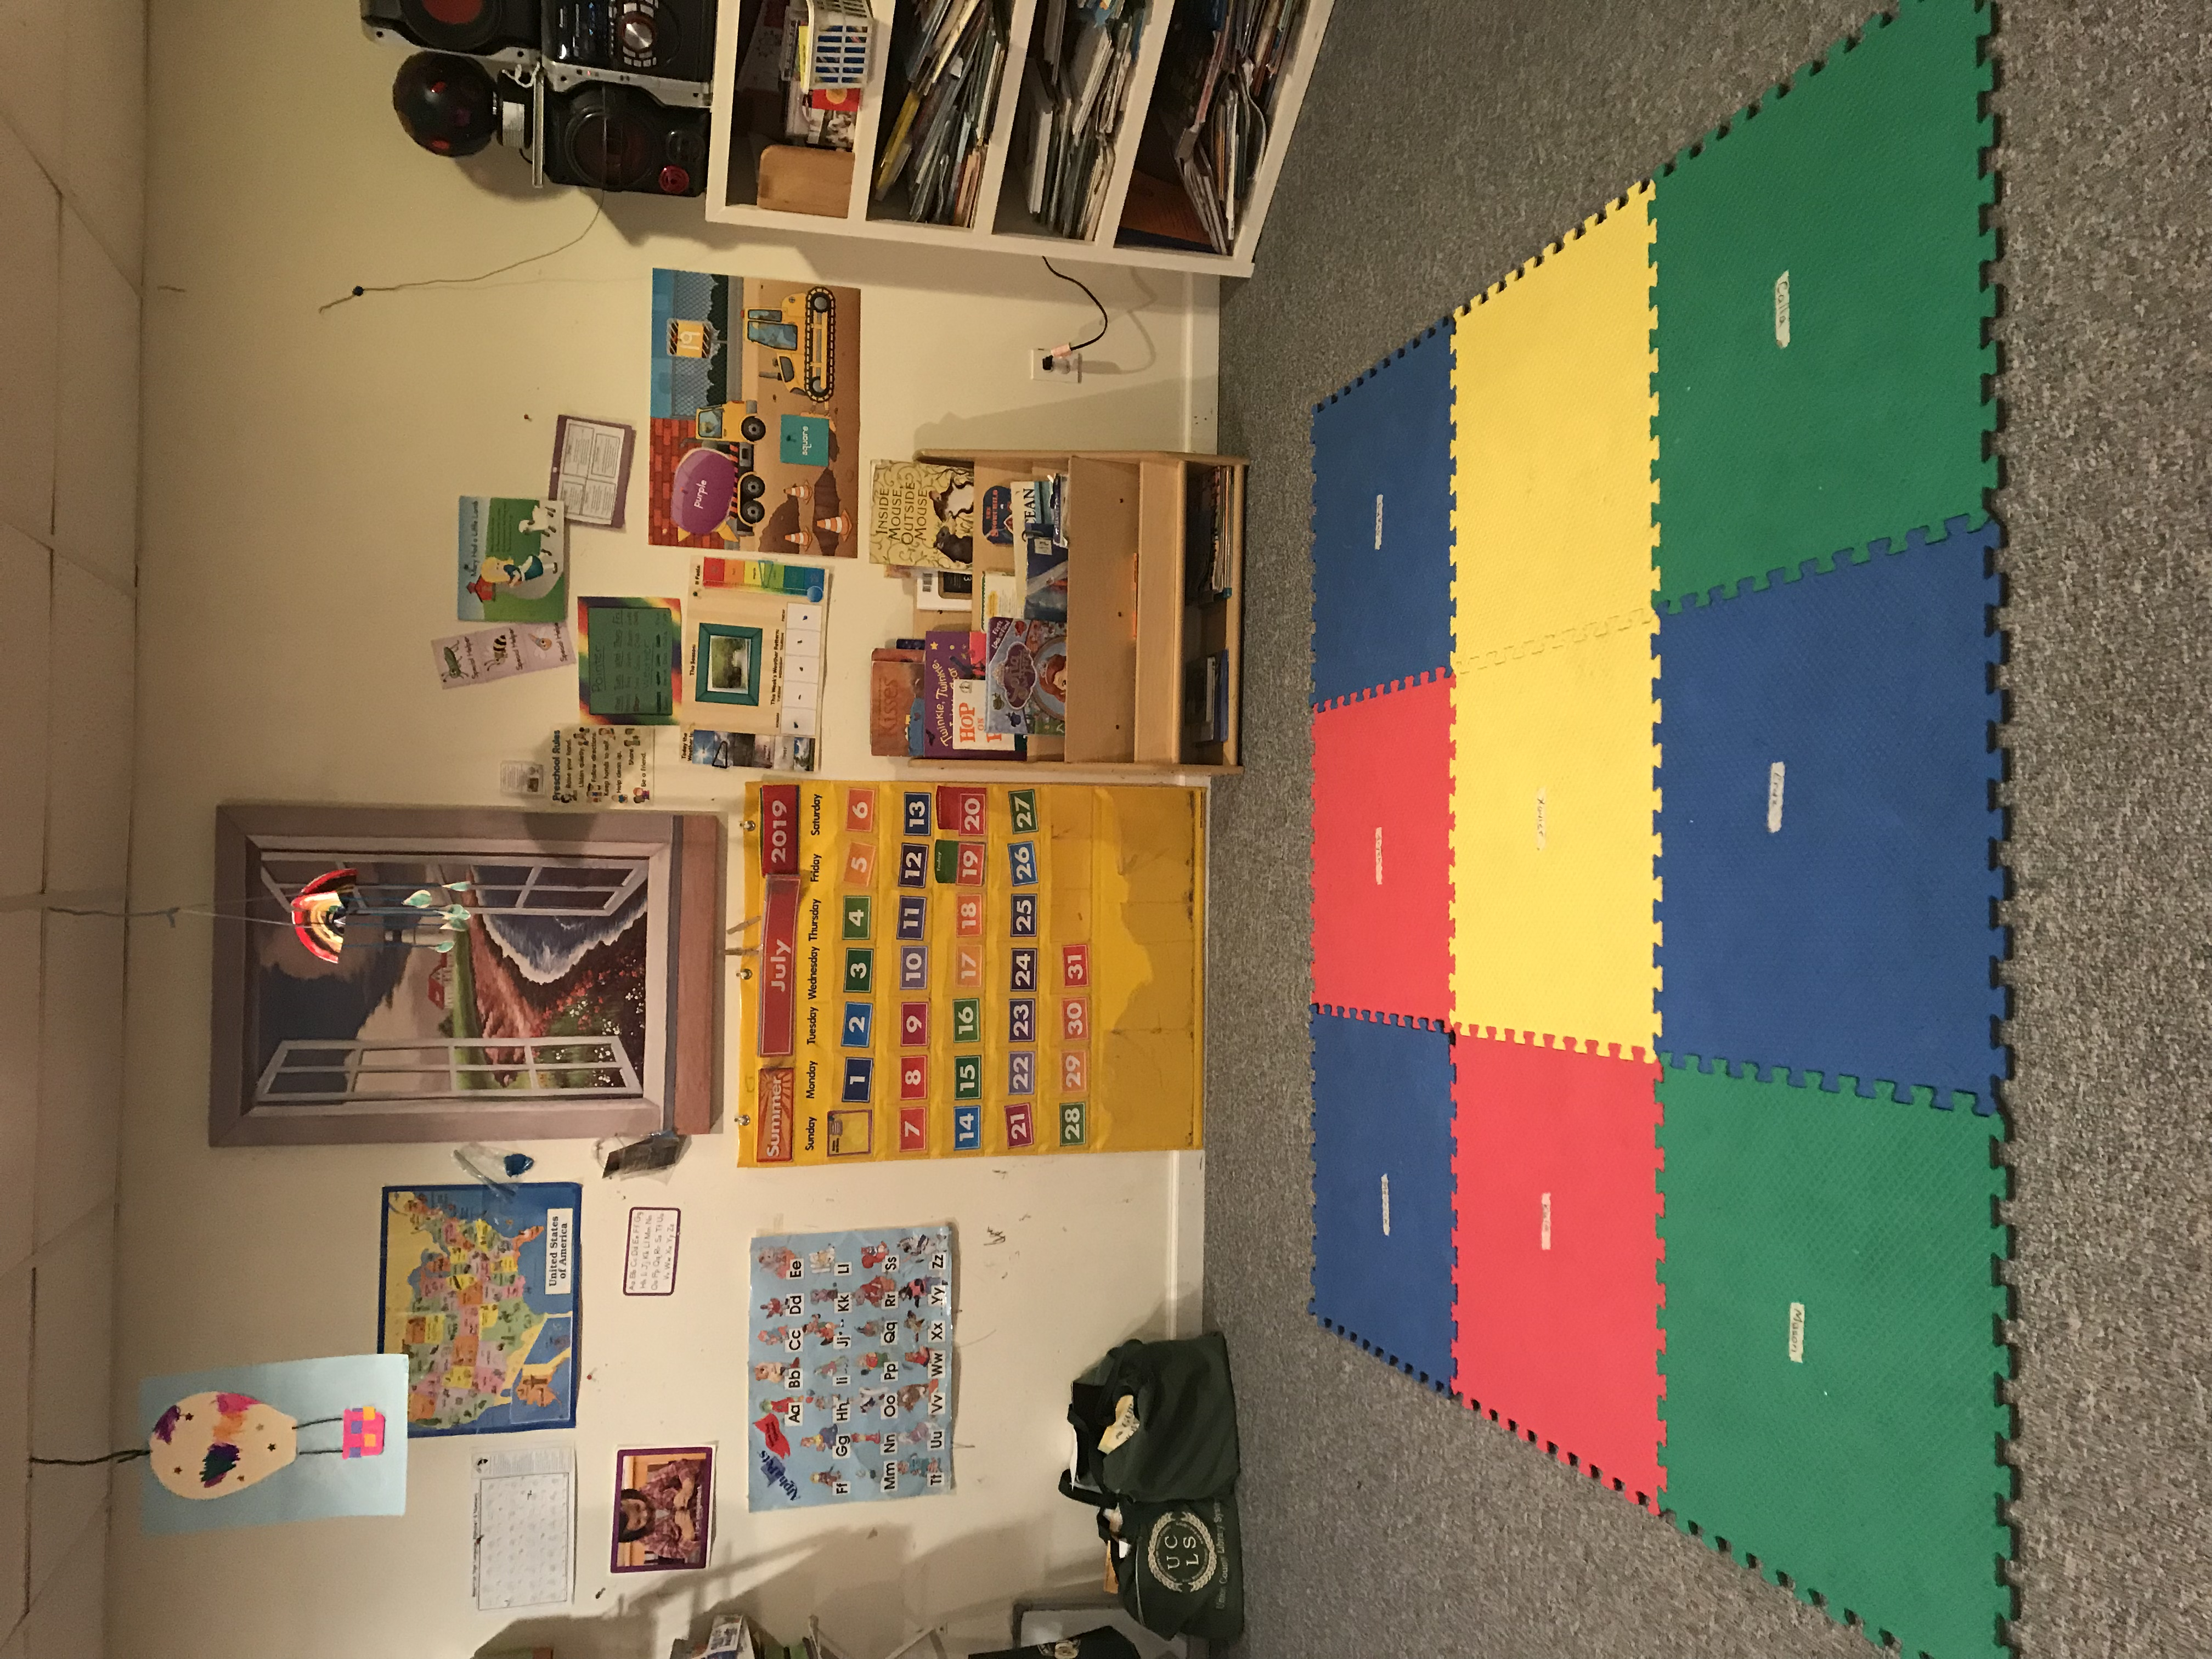 Laura West Family Daycare